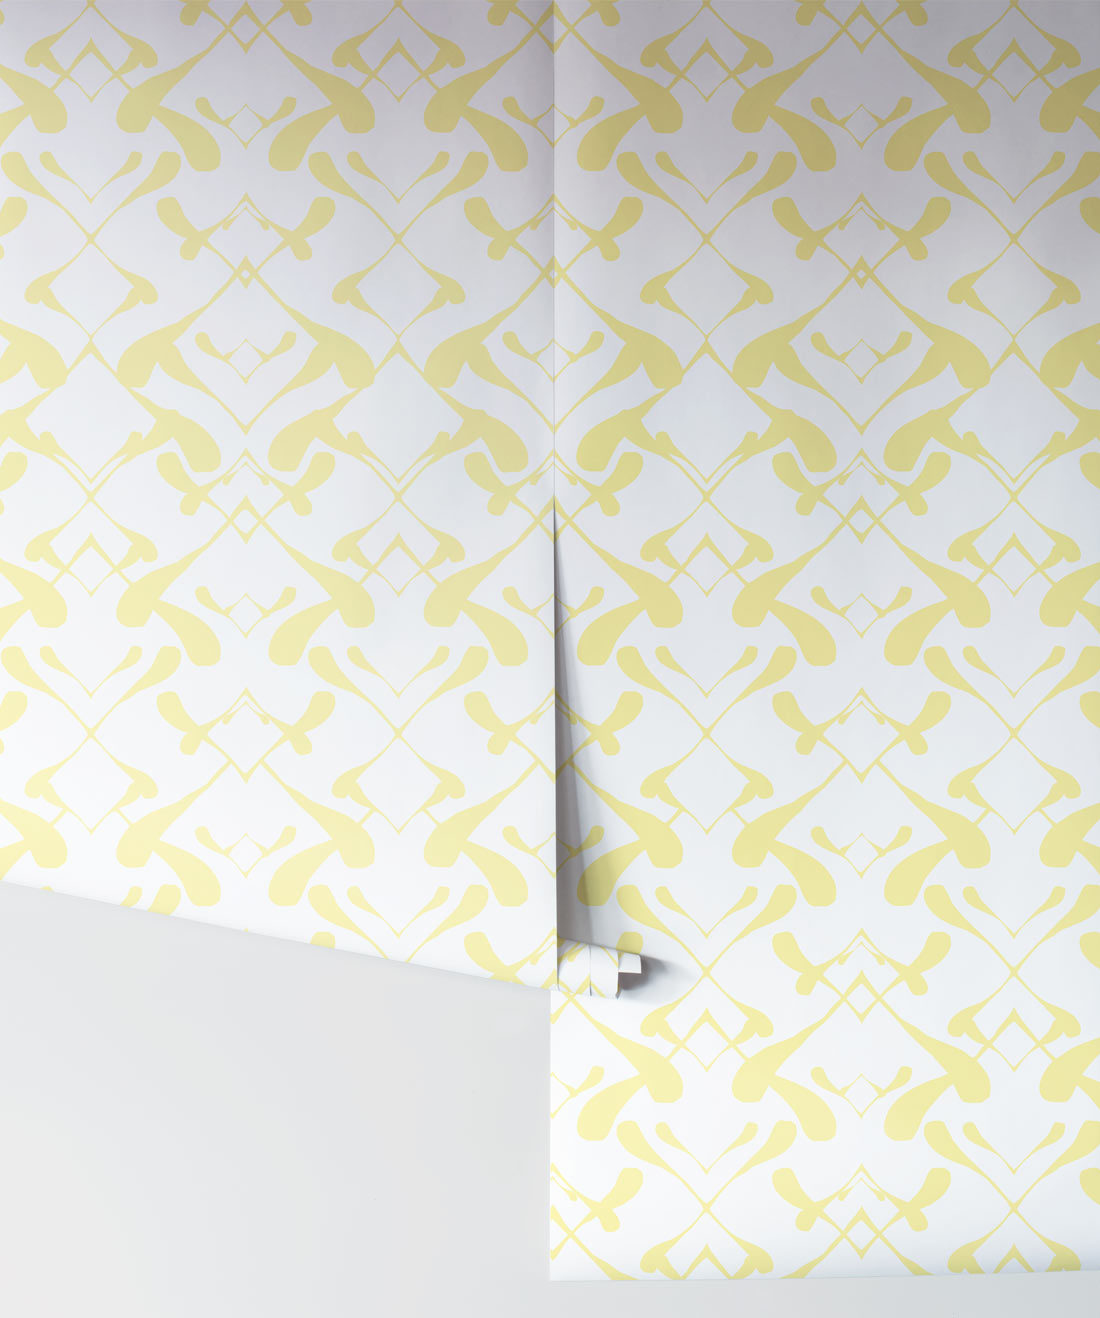 Paperflock, A Bold and Modern Wallpaper